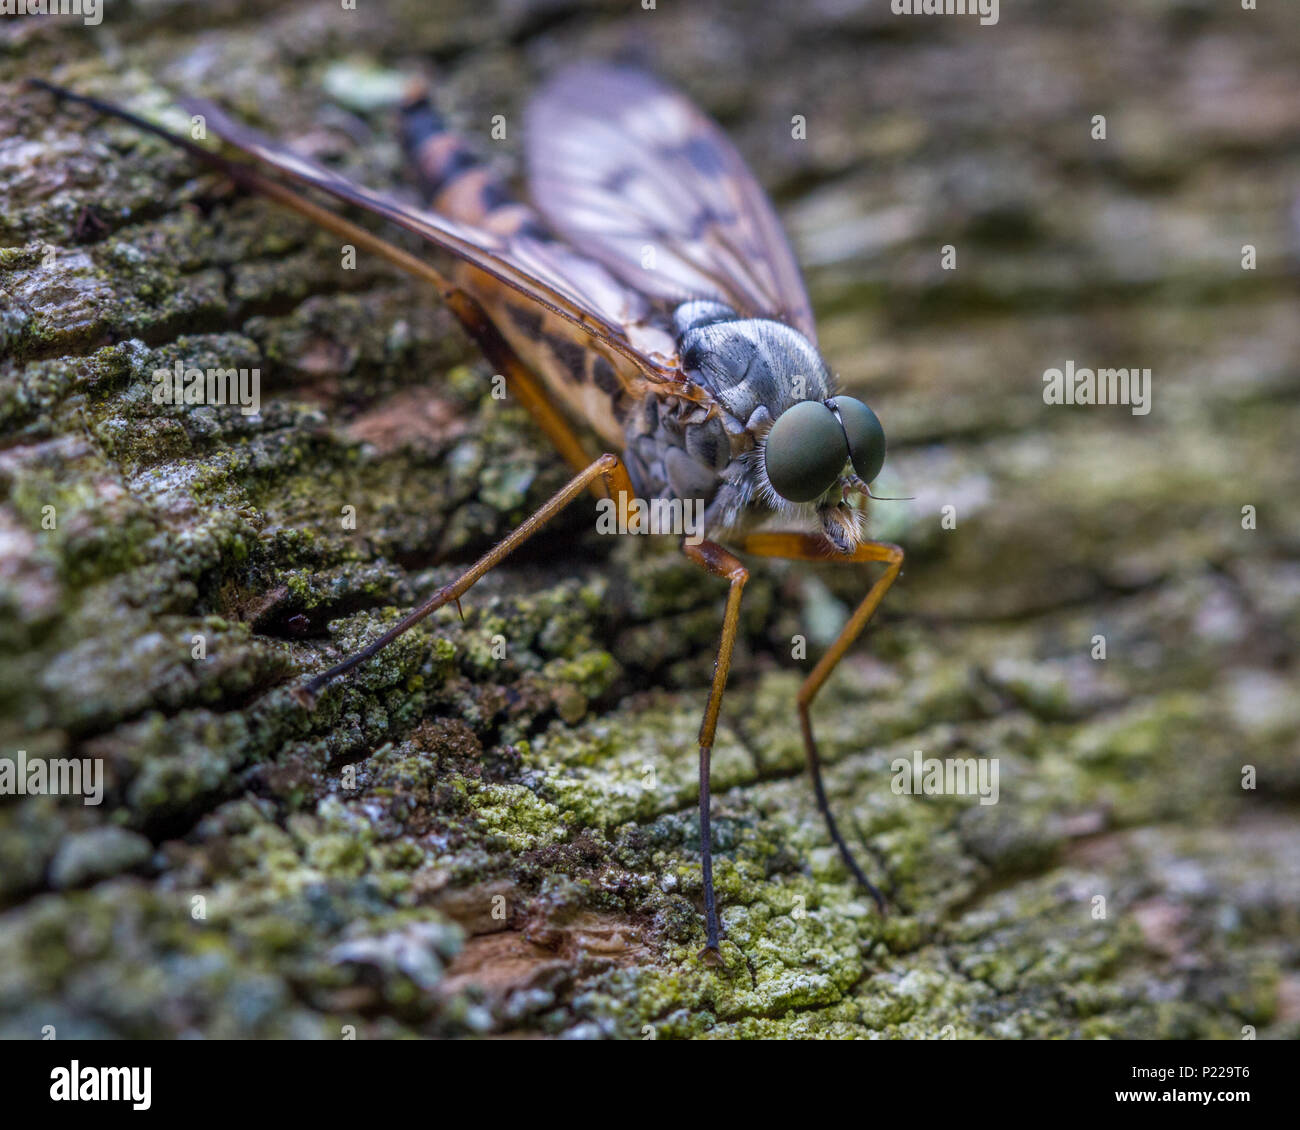 UK wildlife: A macro view of the compound eyes of a downlooker snipe fly (named because of its downward facing stance) - Stock Image